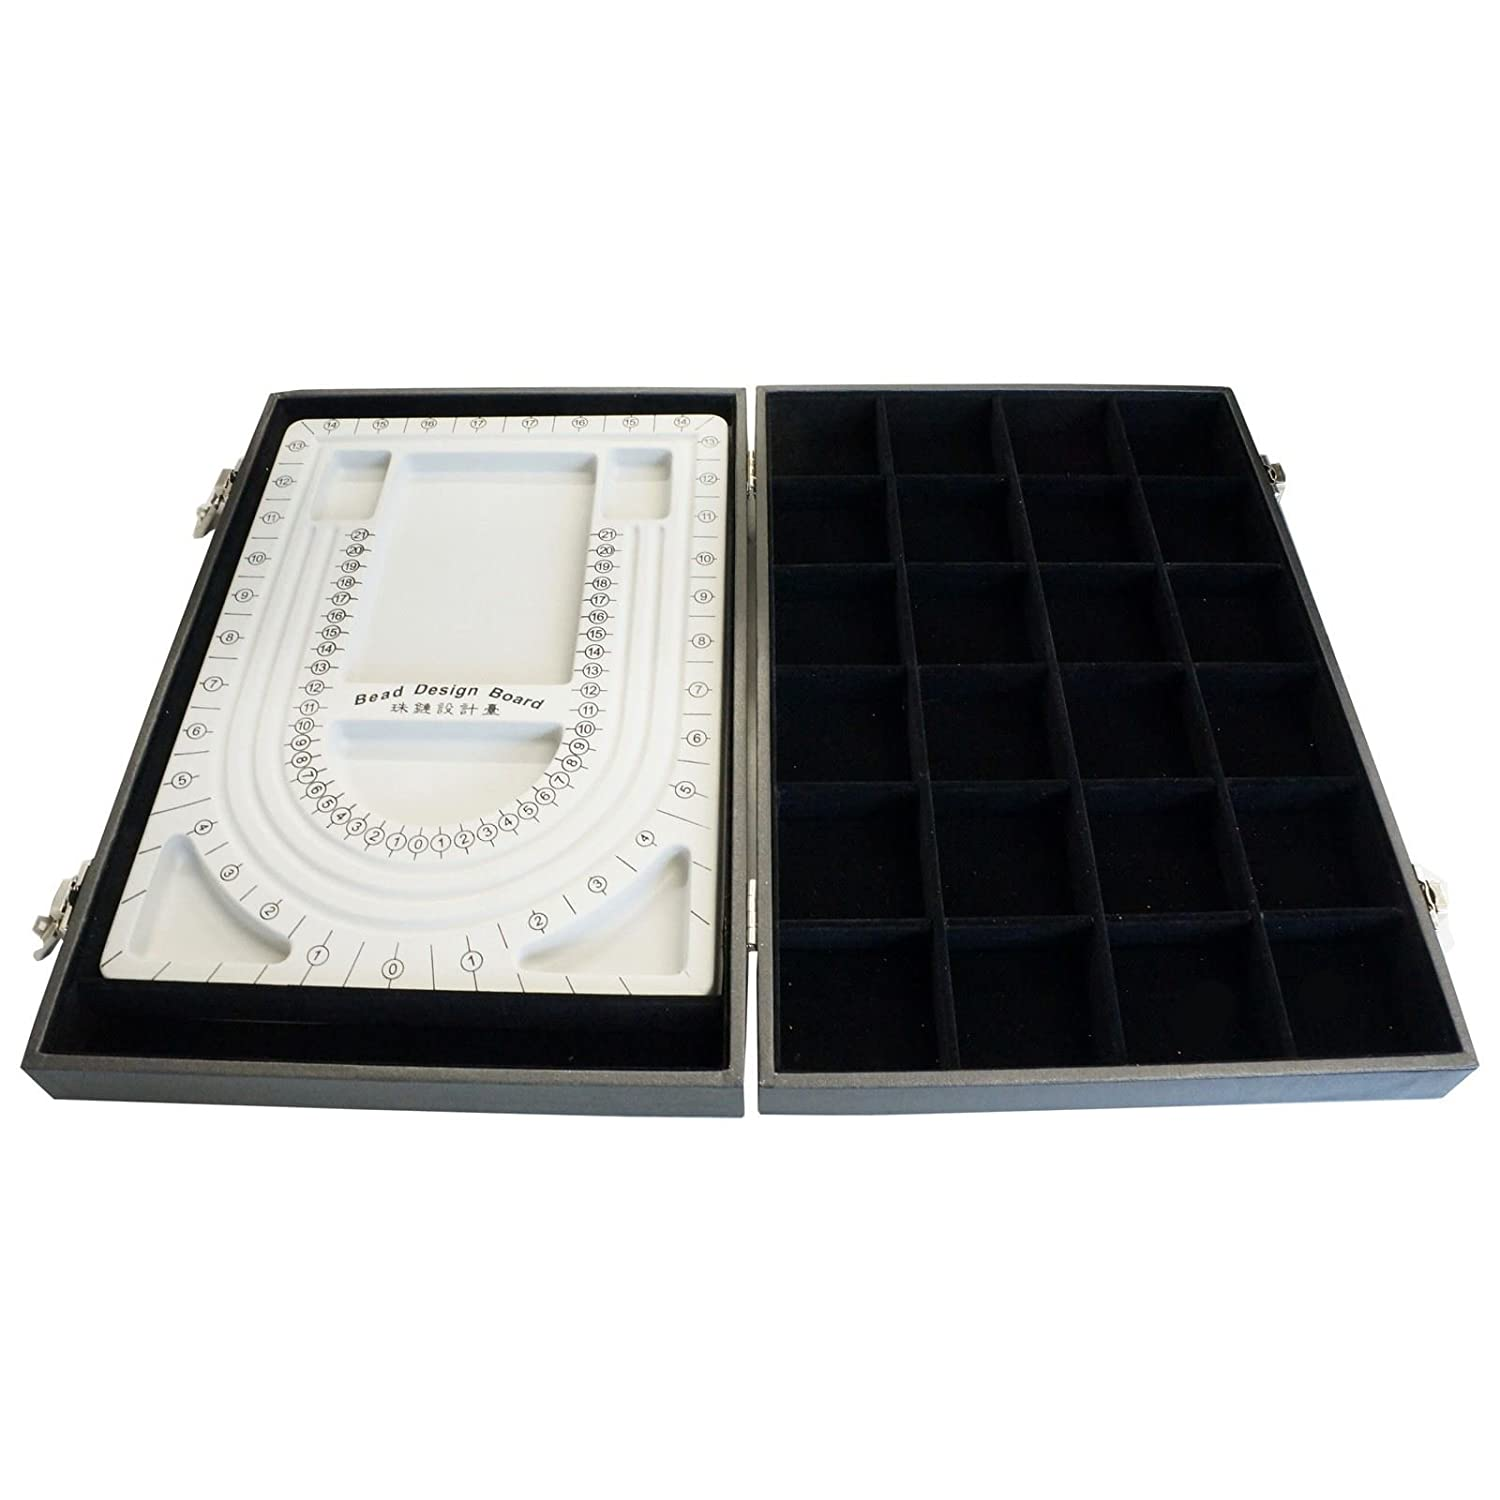 Black Bead Design Board Case Box w 24 Compartments for Beads n Jewelry Findings Princess-J